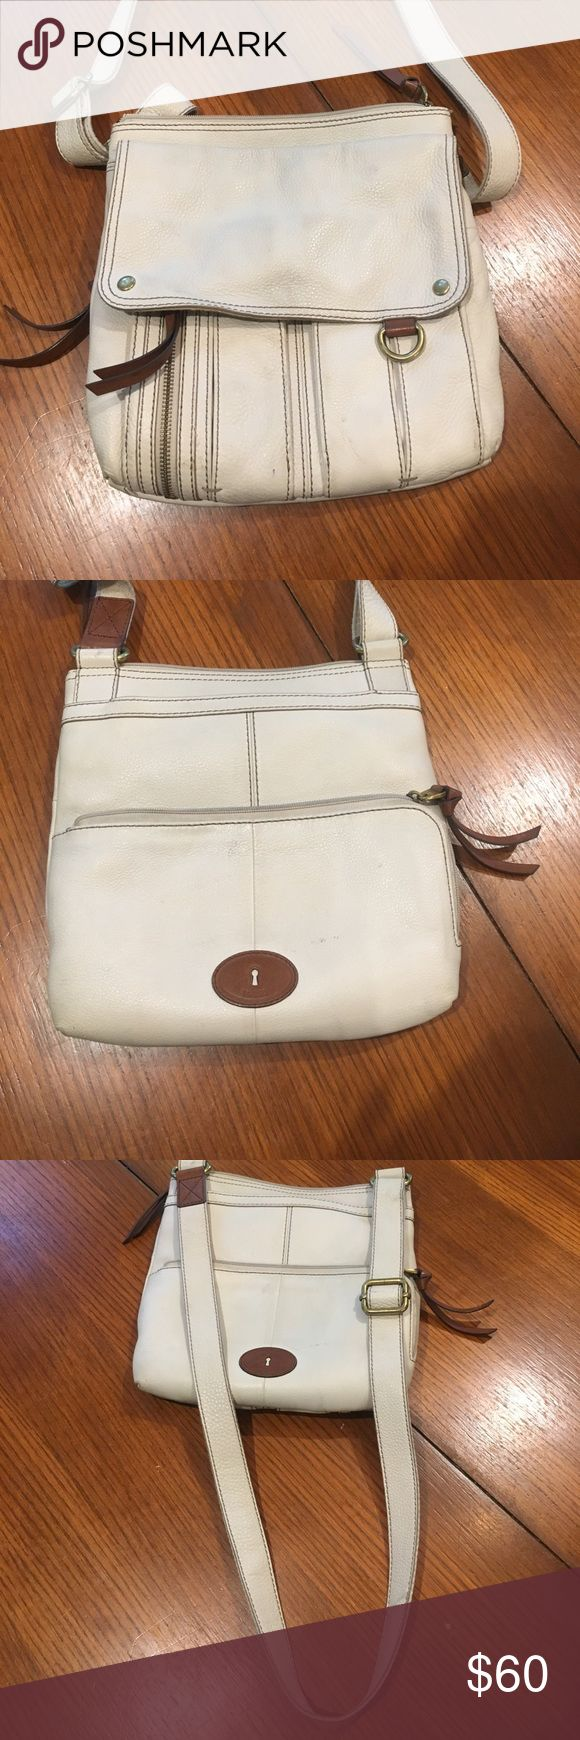 Authentic Morgan Traveler Fossil Bag This is a crossbody Fossil bag. This bag has been used a lot but is still in a good condition! I haven't reached for this bag in a while so I'm hoping someone else will have better use for it! Fossil Bags Crossbody Bags